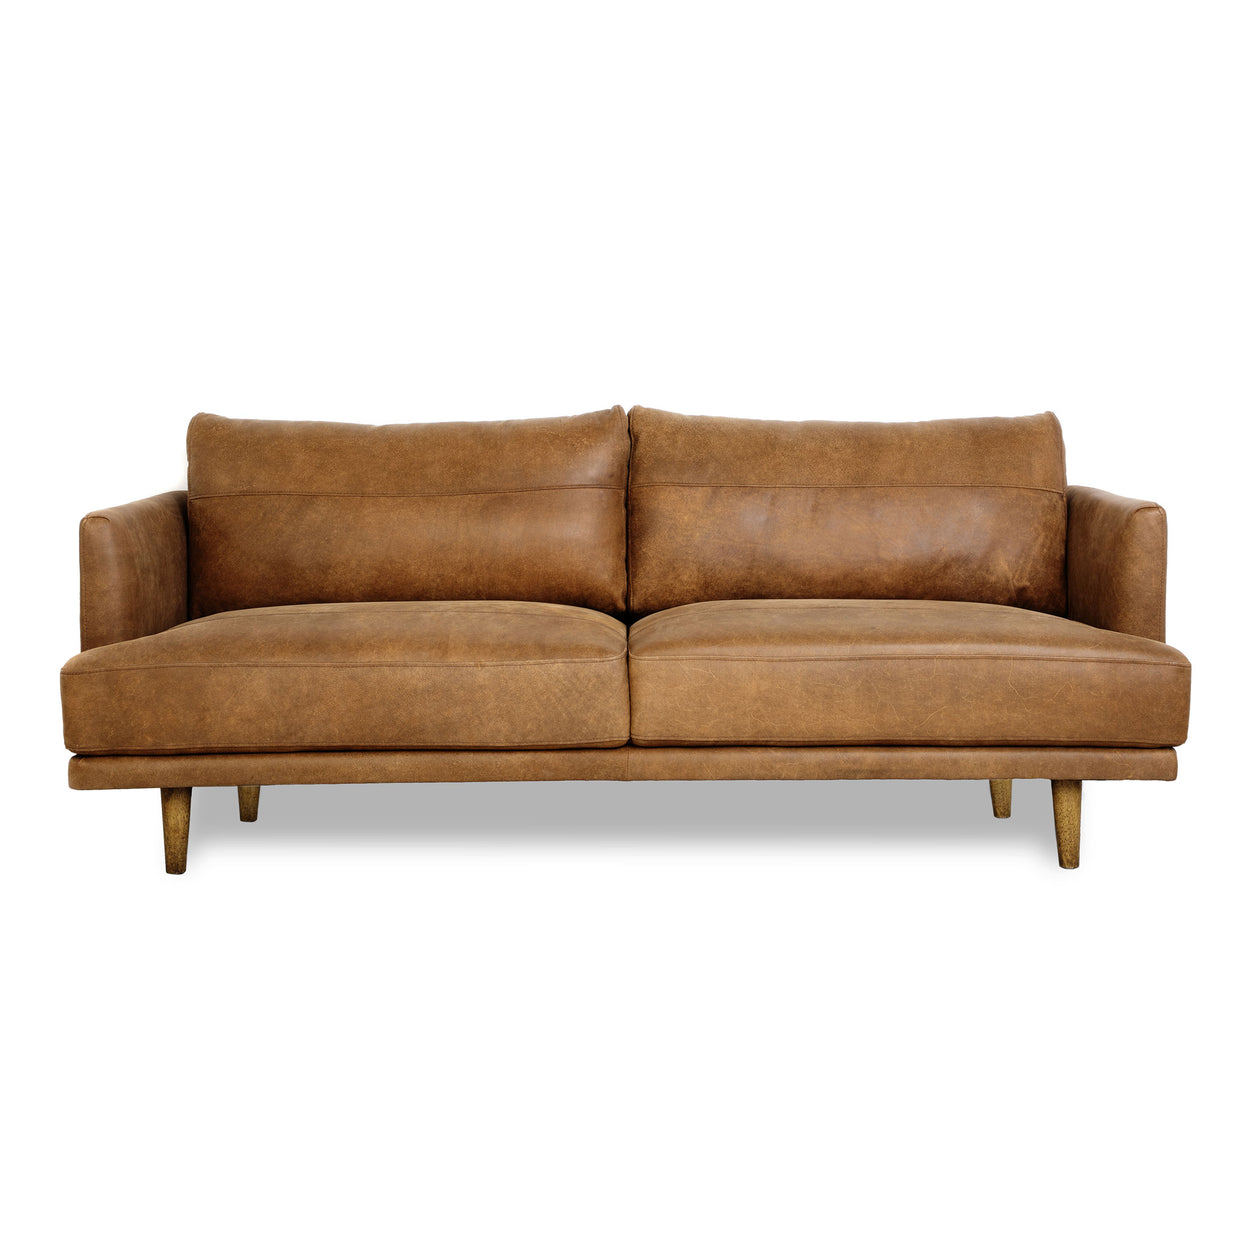 Picture of: Ruby Leather Seat Sofa Melbourne 3 Secret Sofa 0385262554